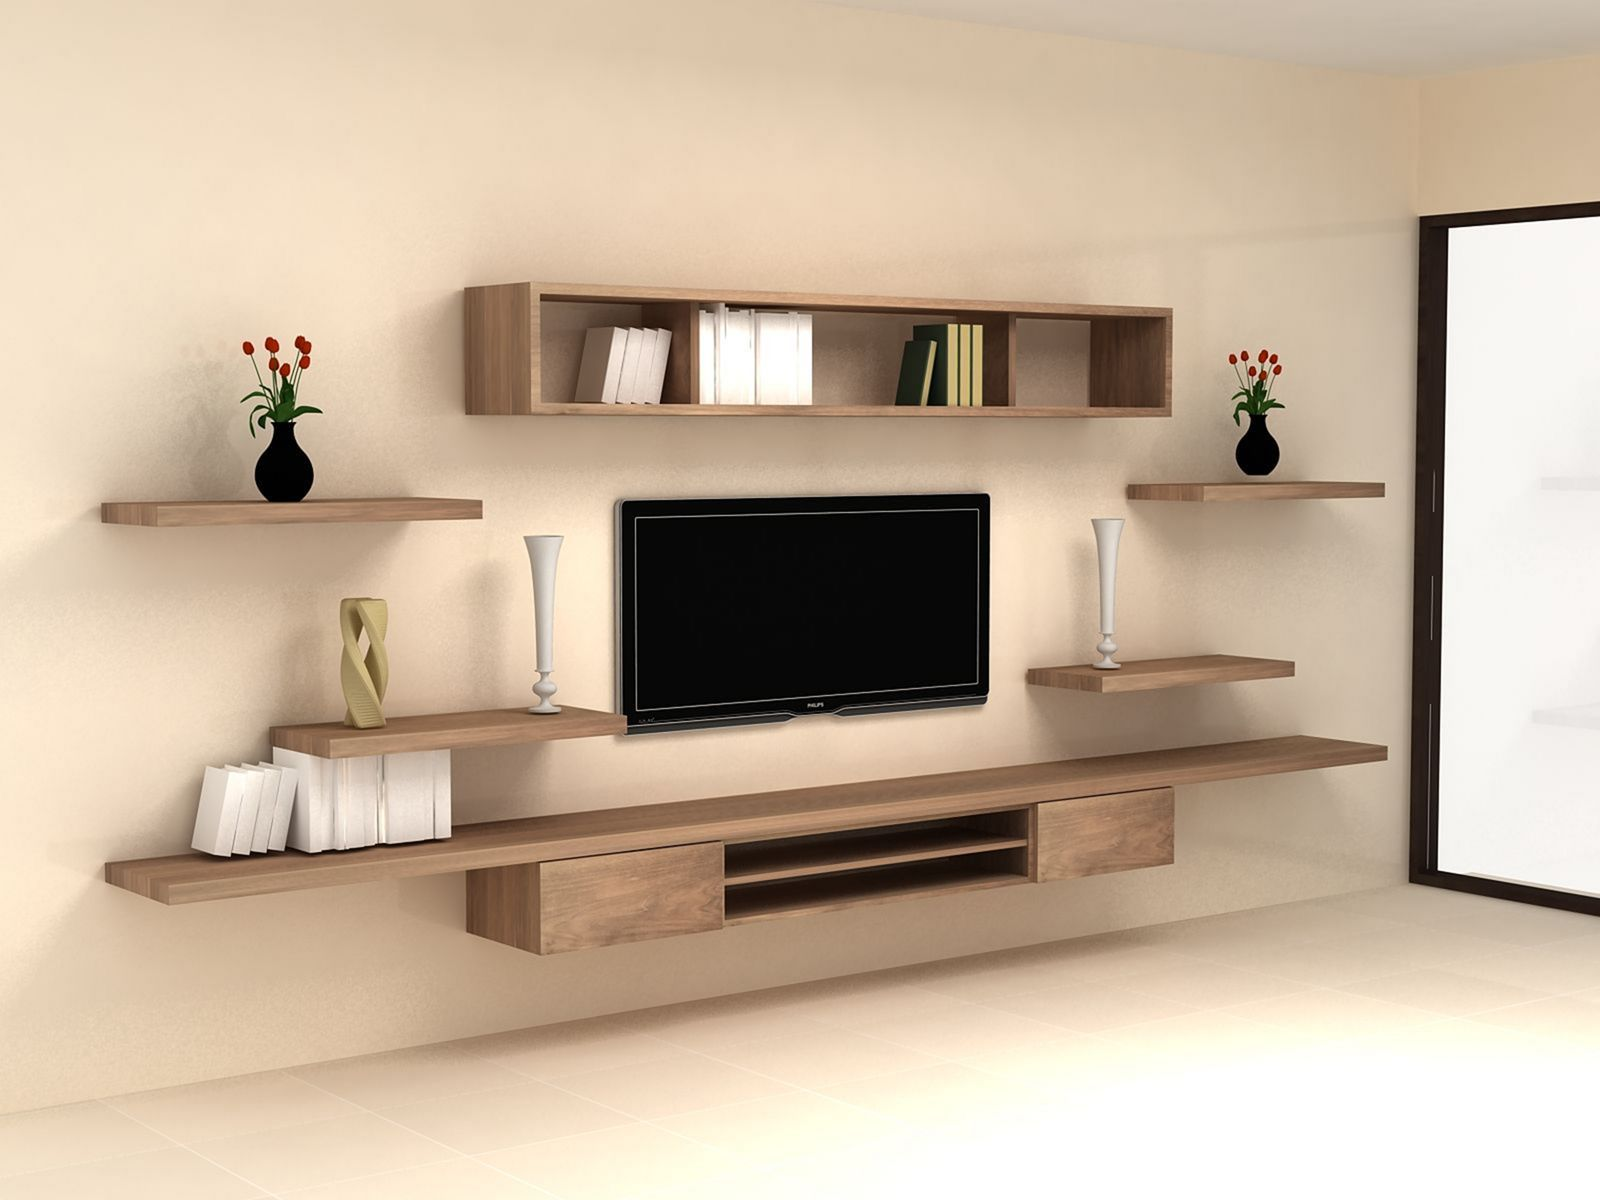 28 Elegant Modern Wall Tv Cabinet Ideas For Living Room In